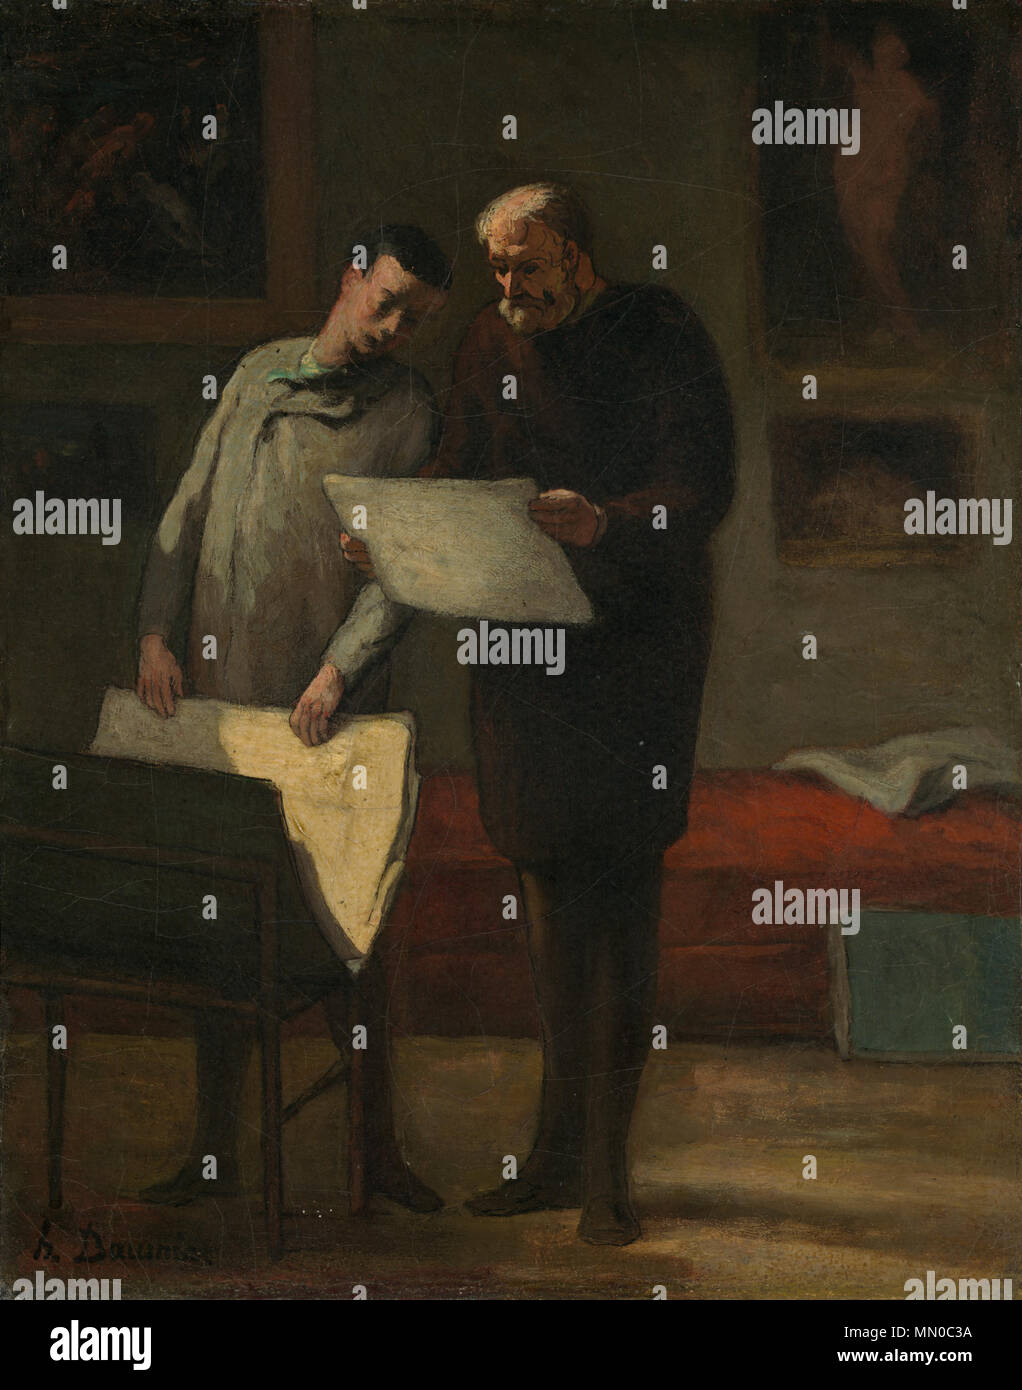 Advice to a Young Artist Painting; oil on canvas; overall: 41.3 x 33 cm (16 1/4 x 13 in.) framed: 65.7 x 57.5 cm (25 7/8 x 22 5/8 in.); Advice to a Young Artist by Honoré Daumier c1865-68 - Stock Image